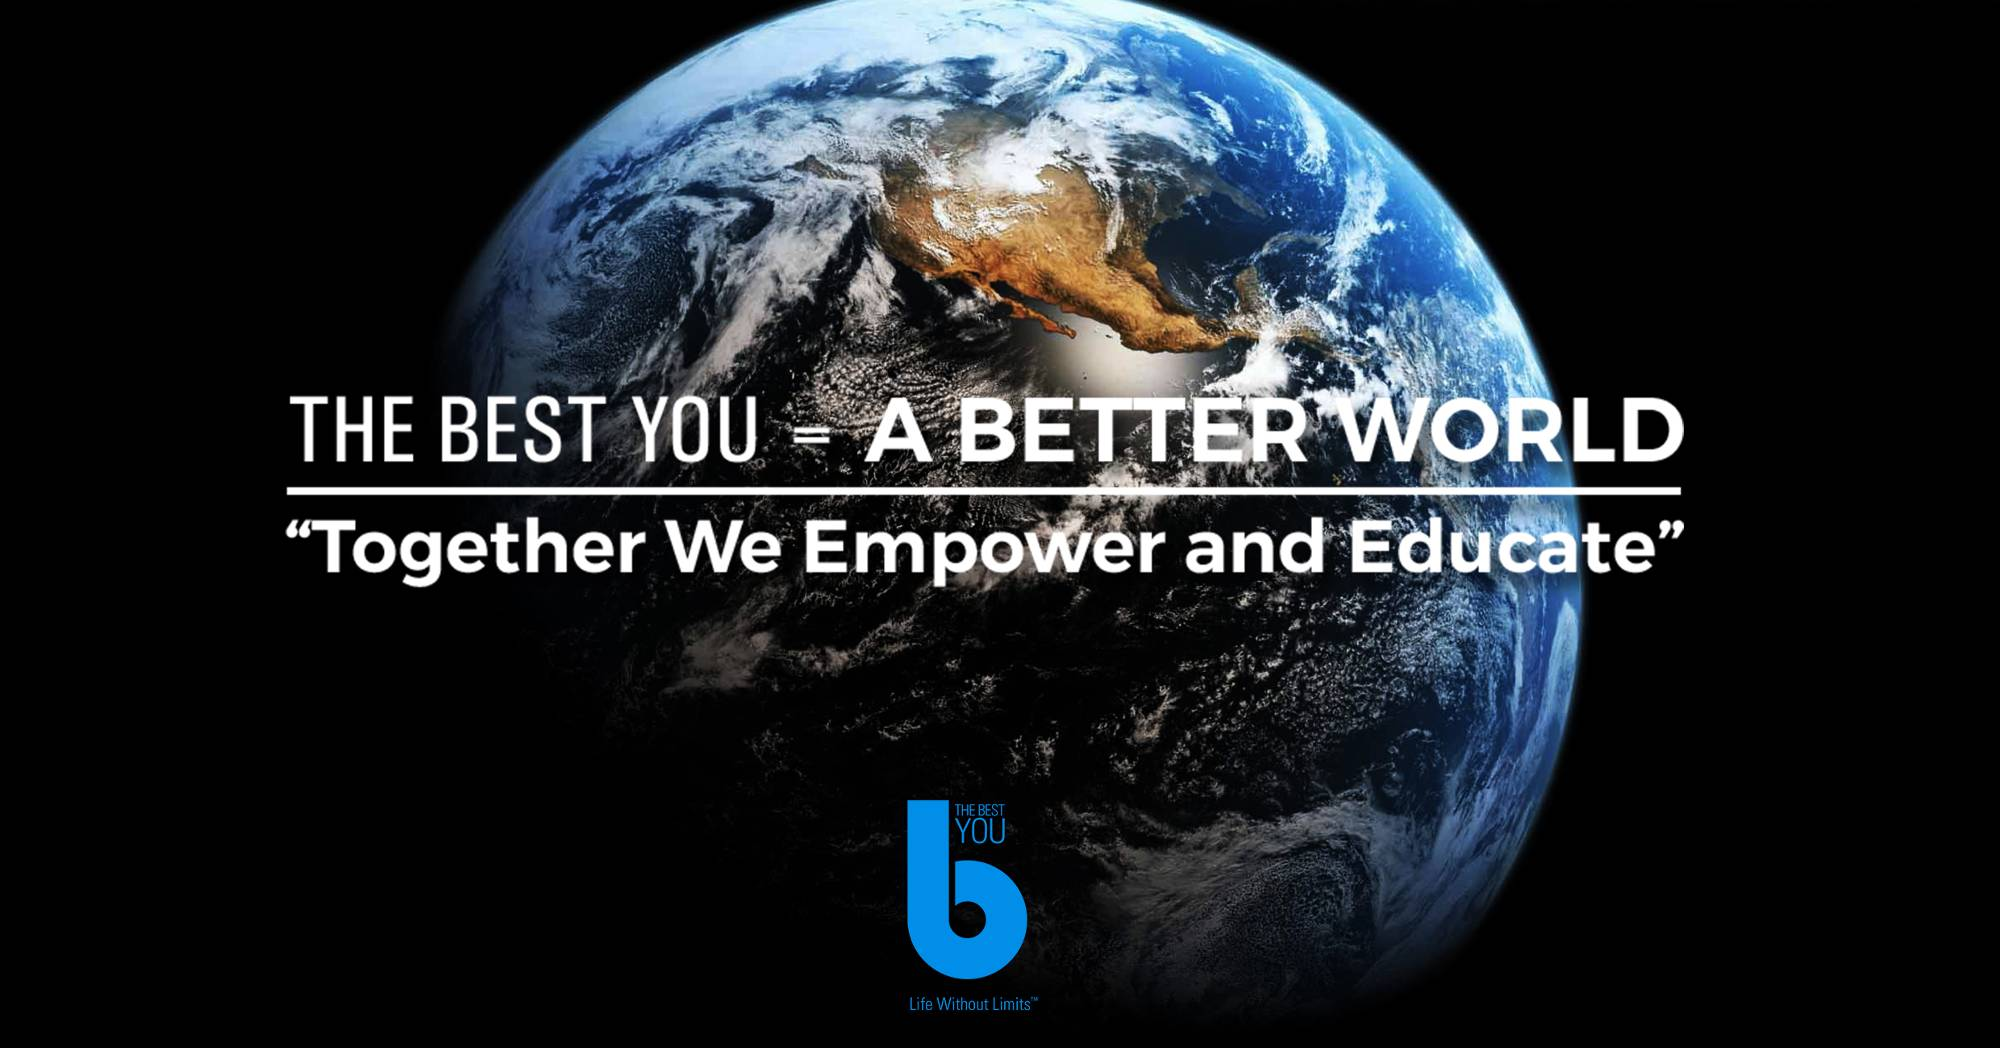 https://thebestyouexpo.com/mia/wp-content/uploads/tby-expo-better-world.jpg